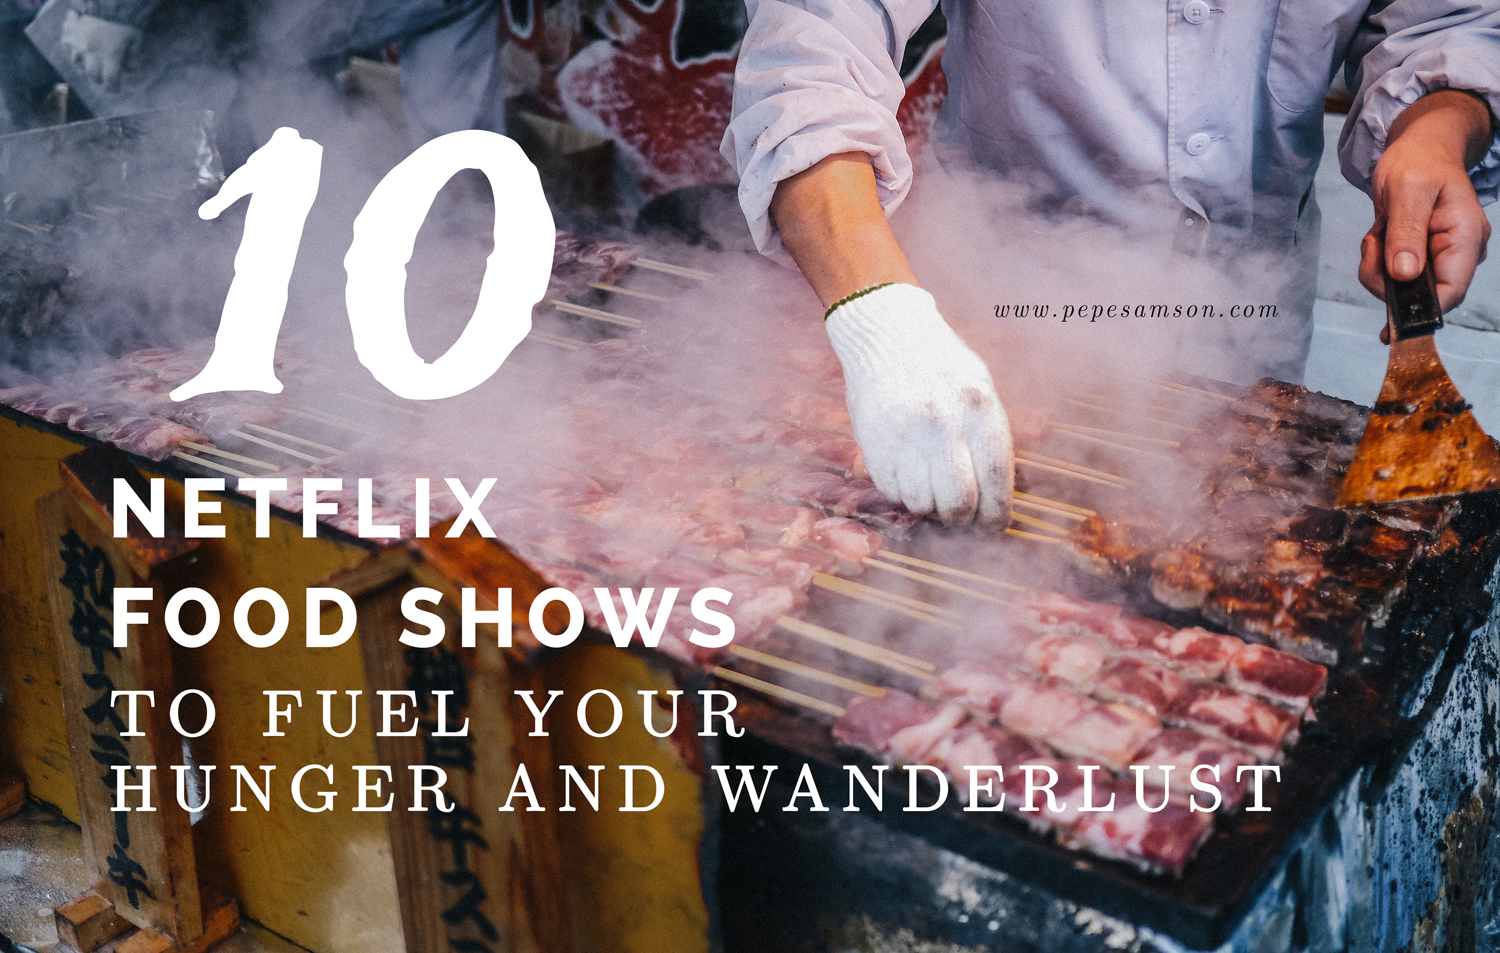 10 Netflix Food Shows to Fuel Your Hunger and Wanderlust